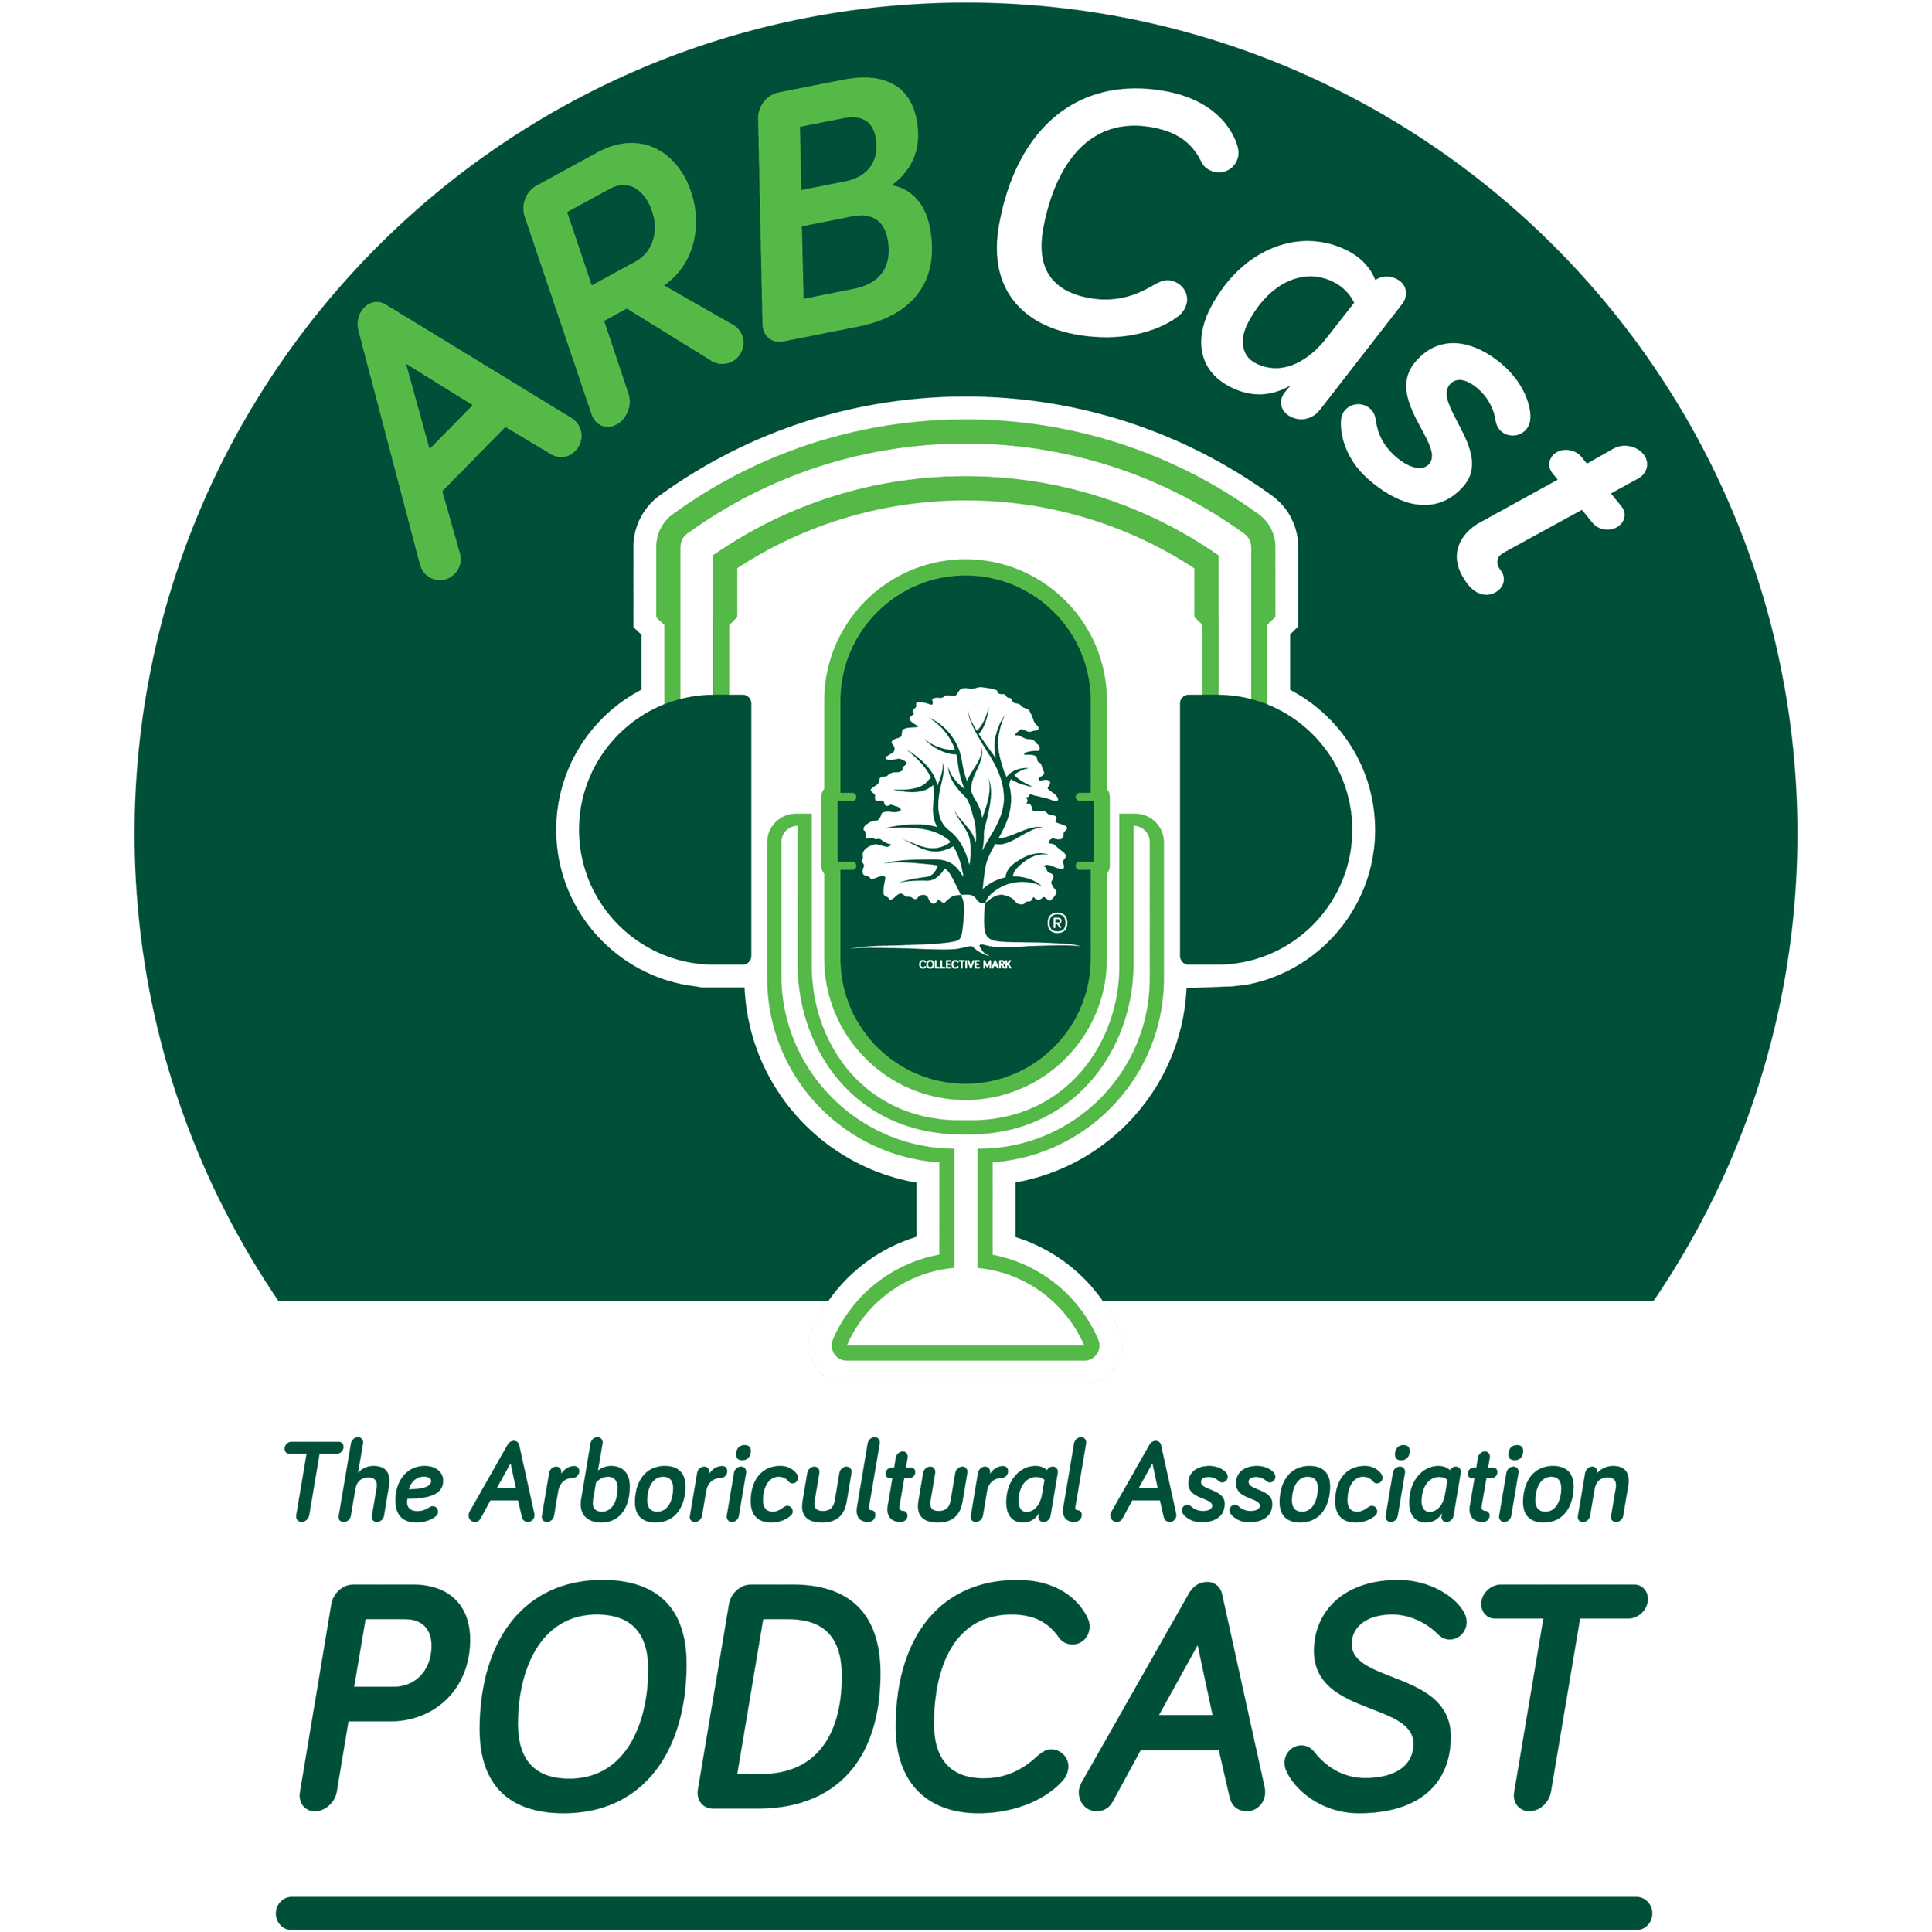 ArbCast – The Arboricultural Association Podcast